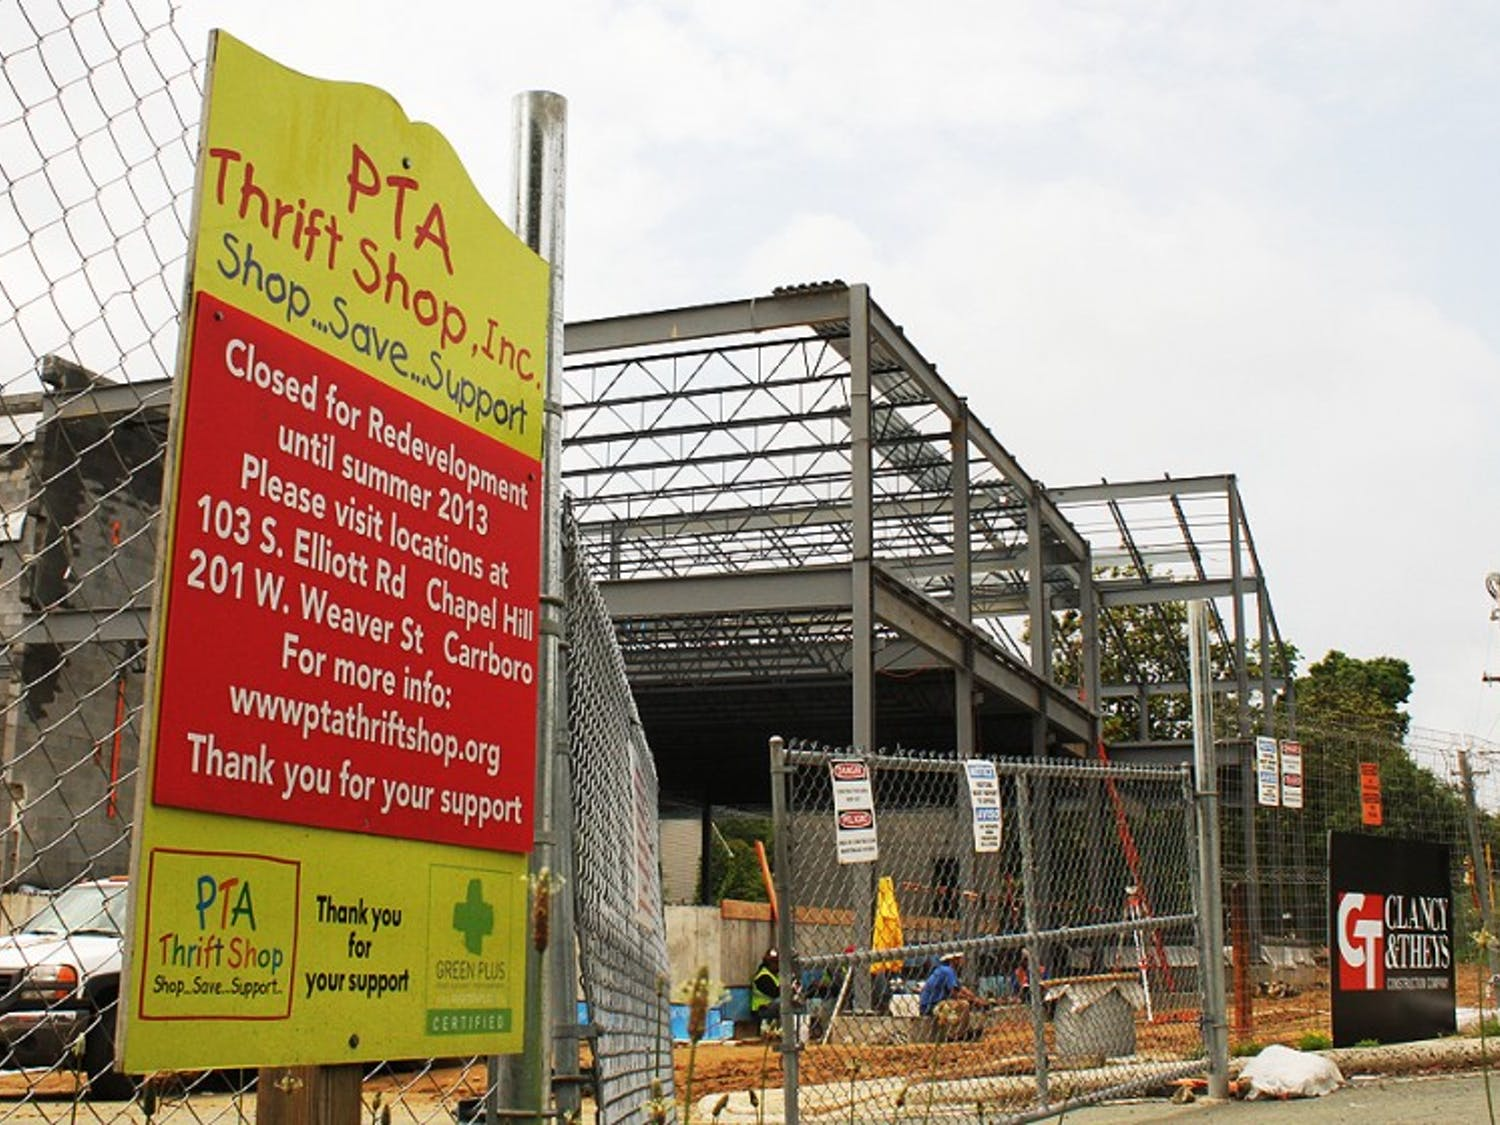 The construction of the new Carrboro PTA Thrift Shop is steadily progressing as it aims to reopen in early October.